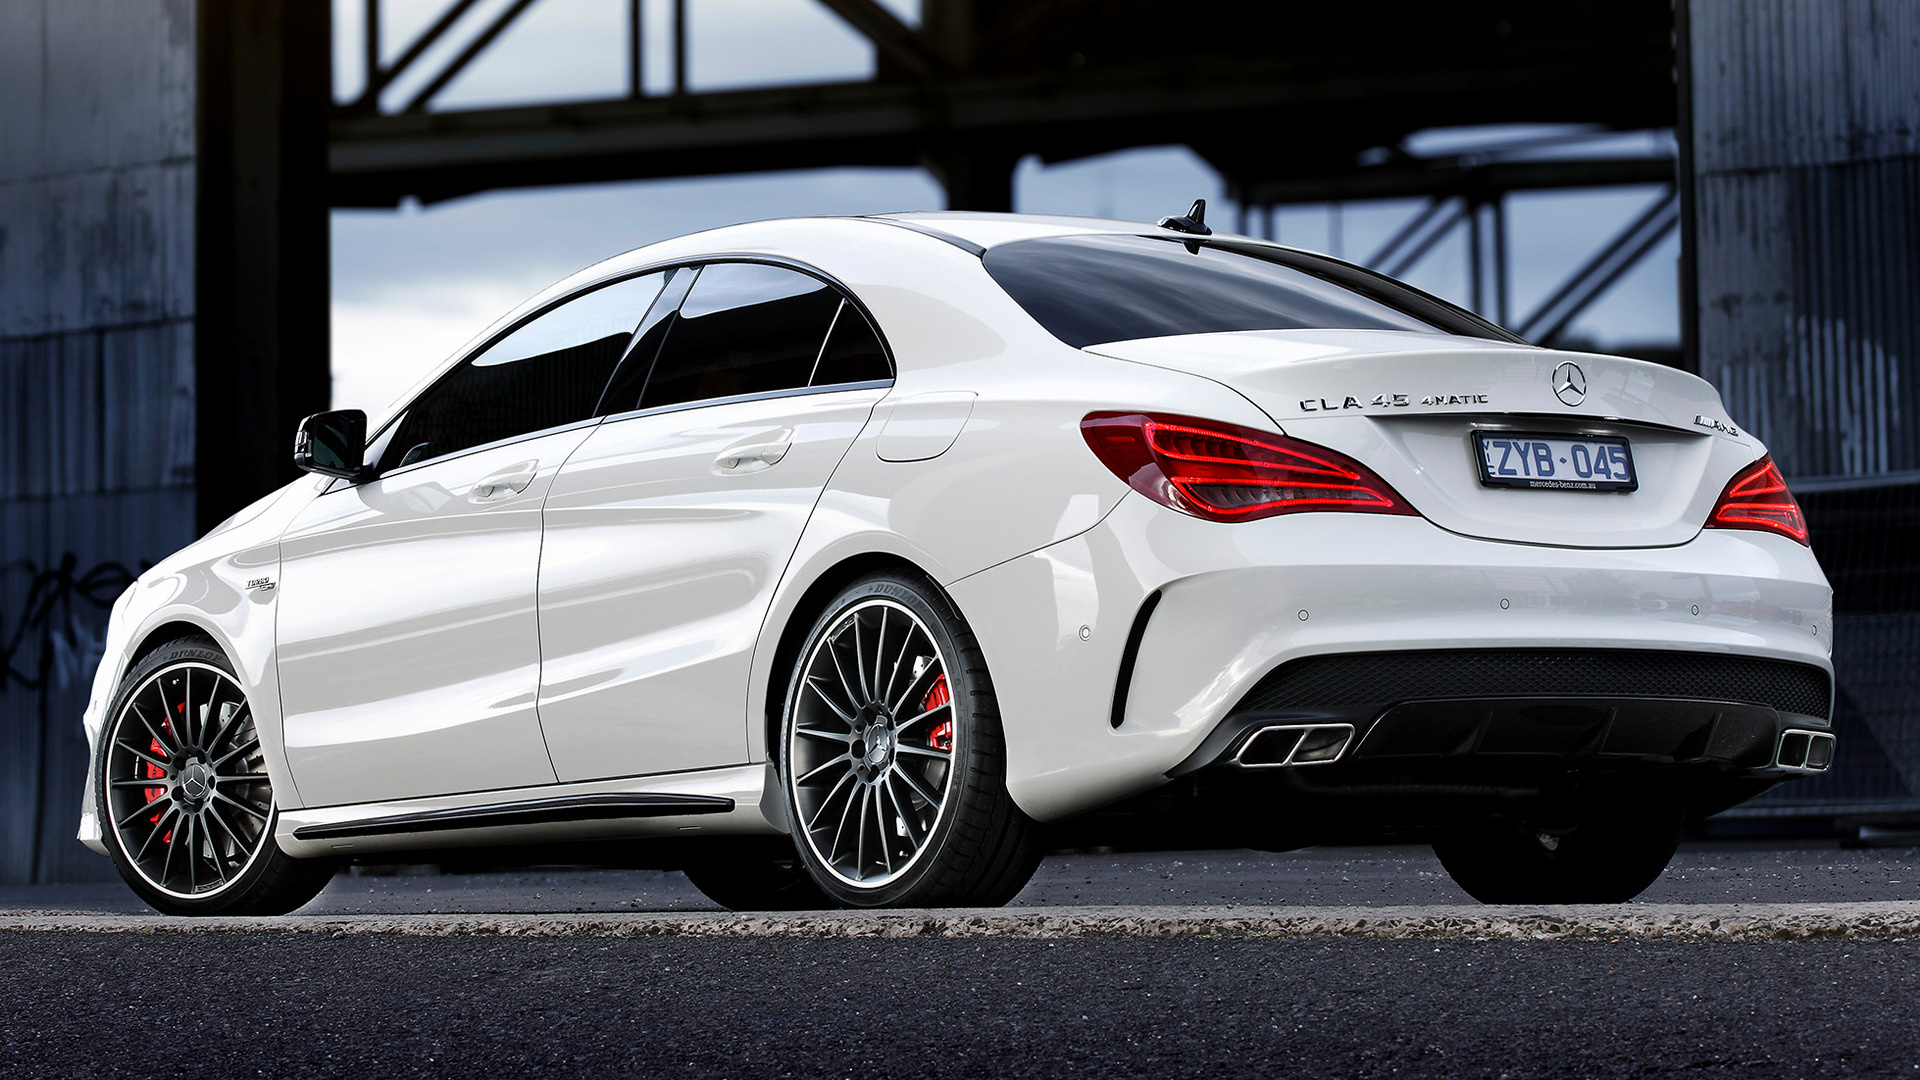 2013 Mercedes Benz CLA 45 AMG AU   Wallpapers and HD Images 1920x1080